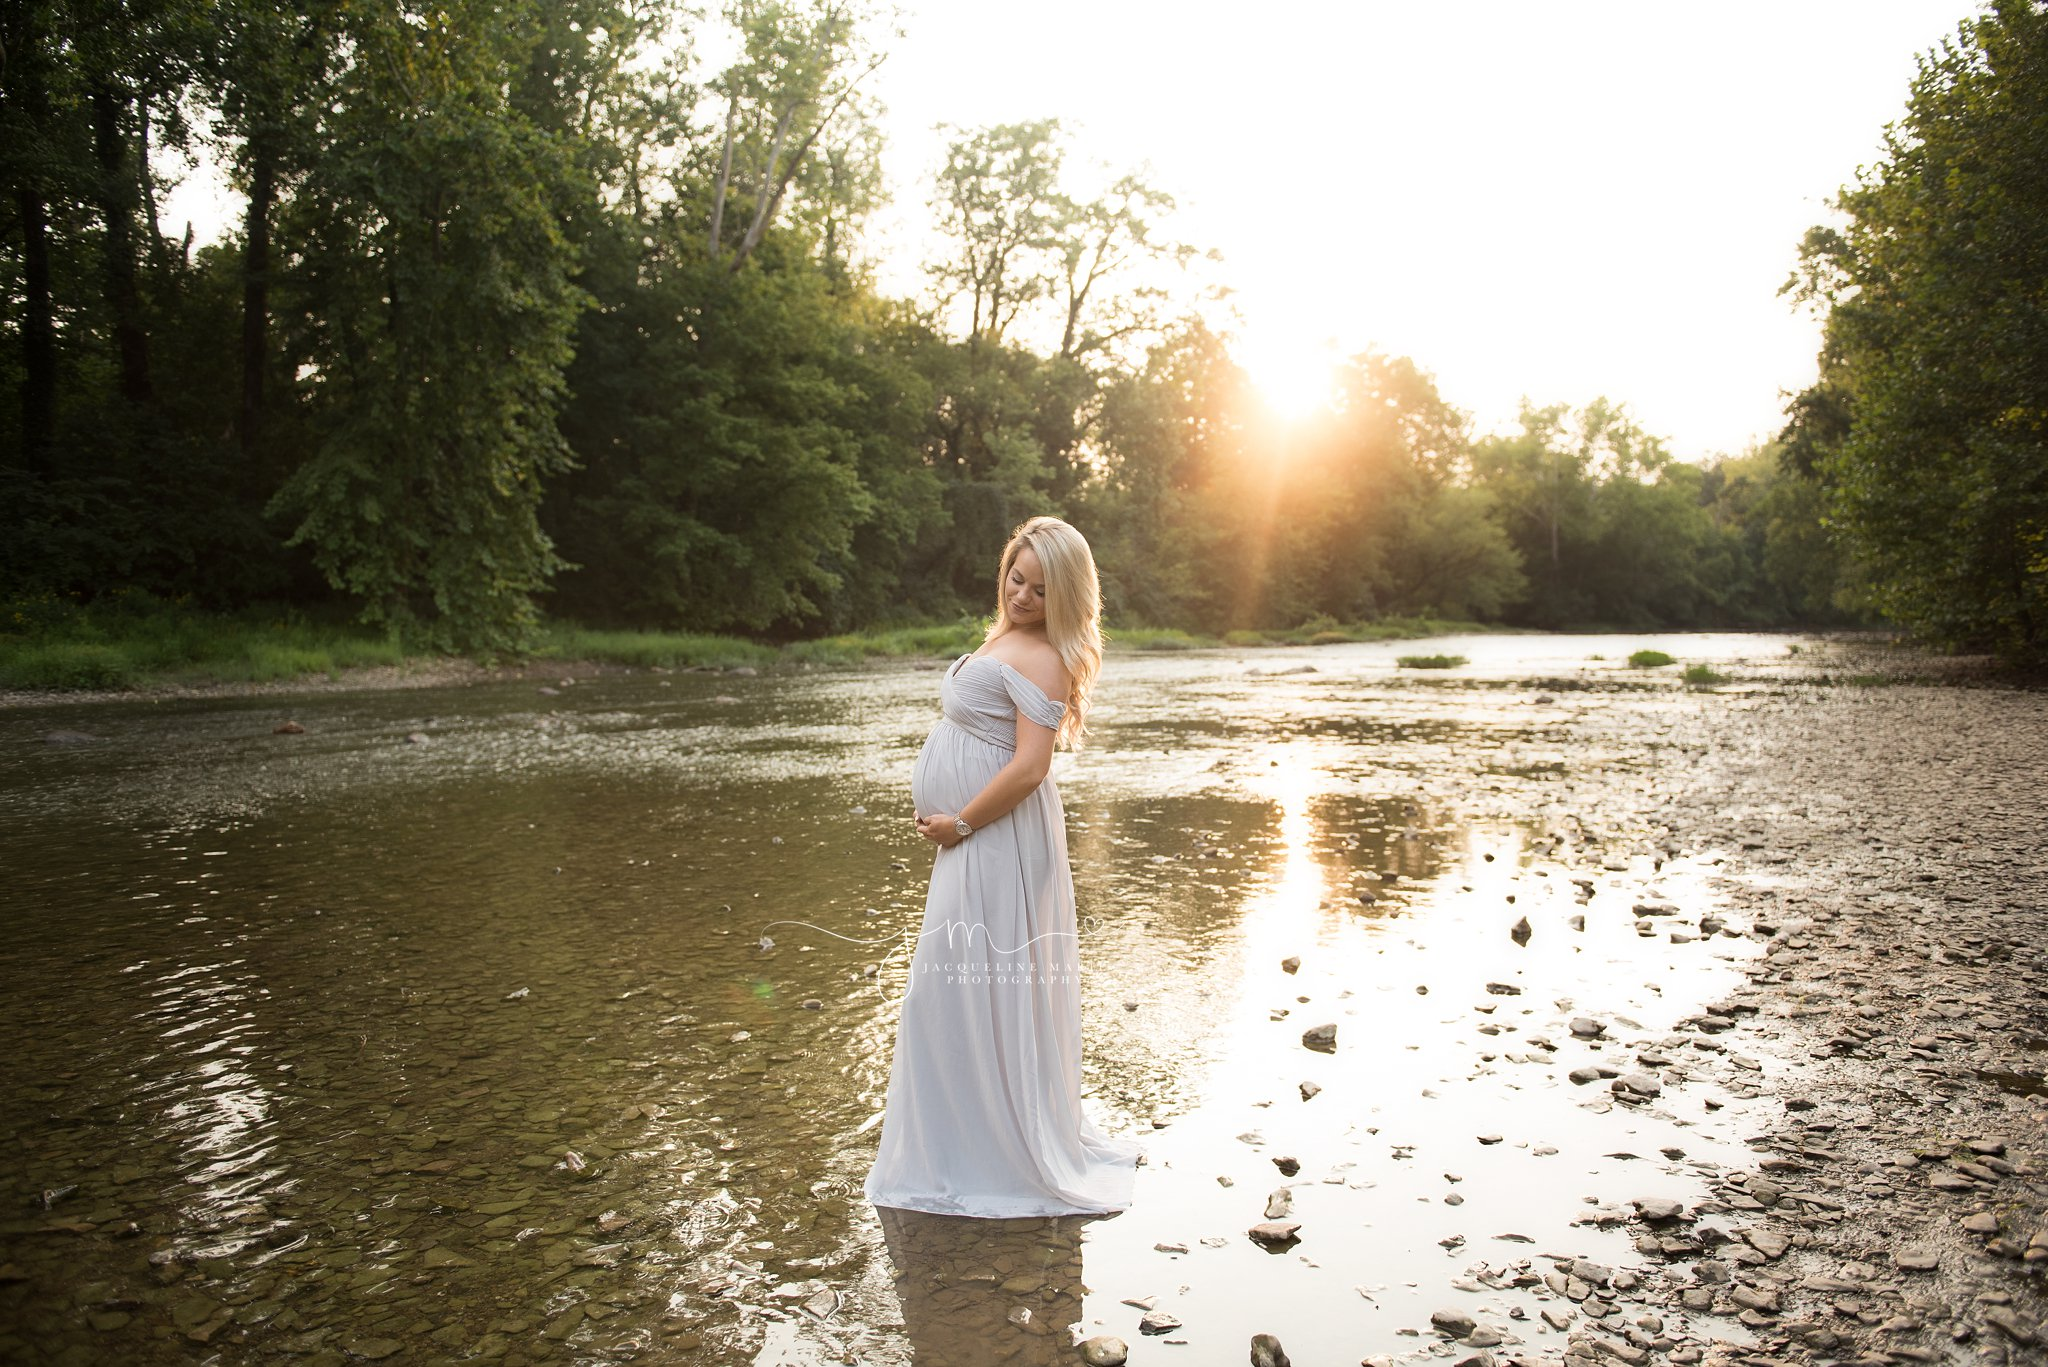 columbus ohio maternity session during golden hour sunset at metro park with water and rocks